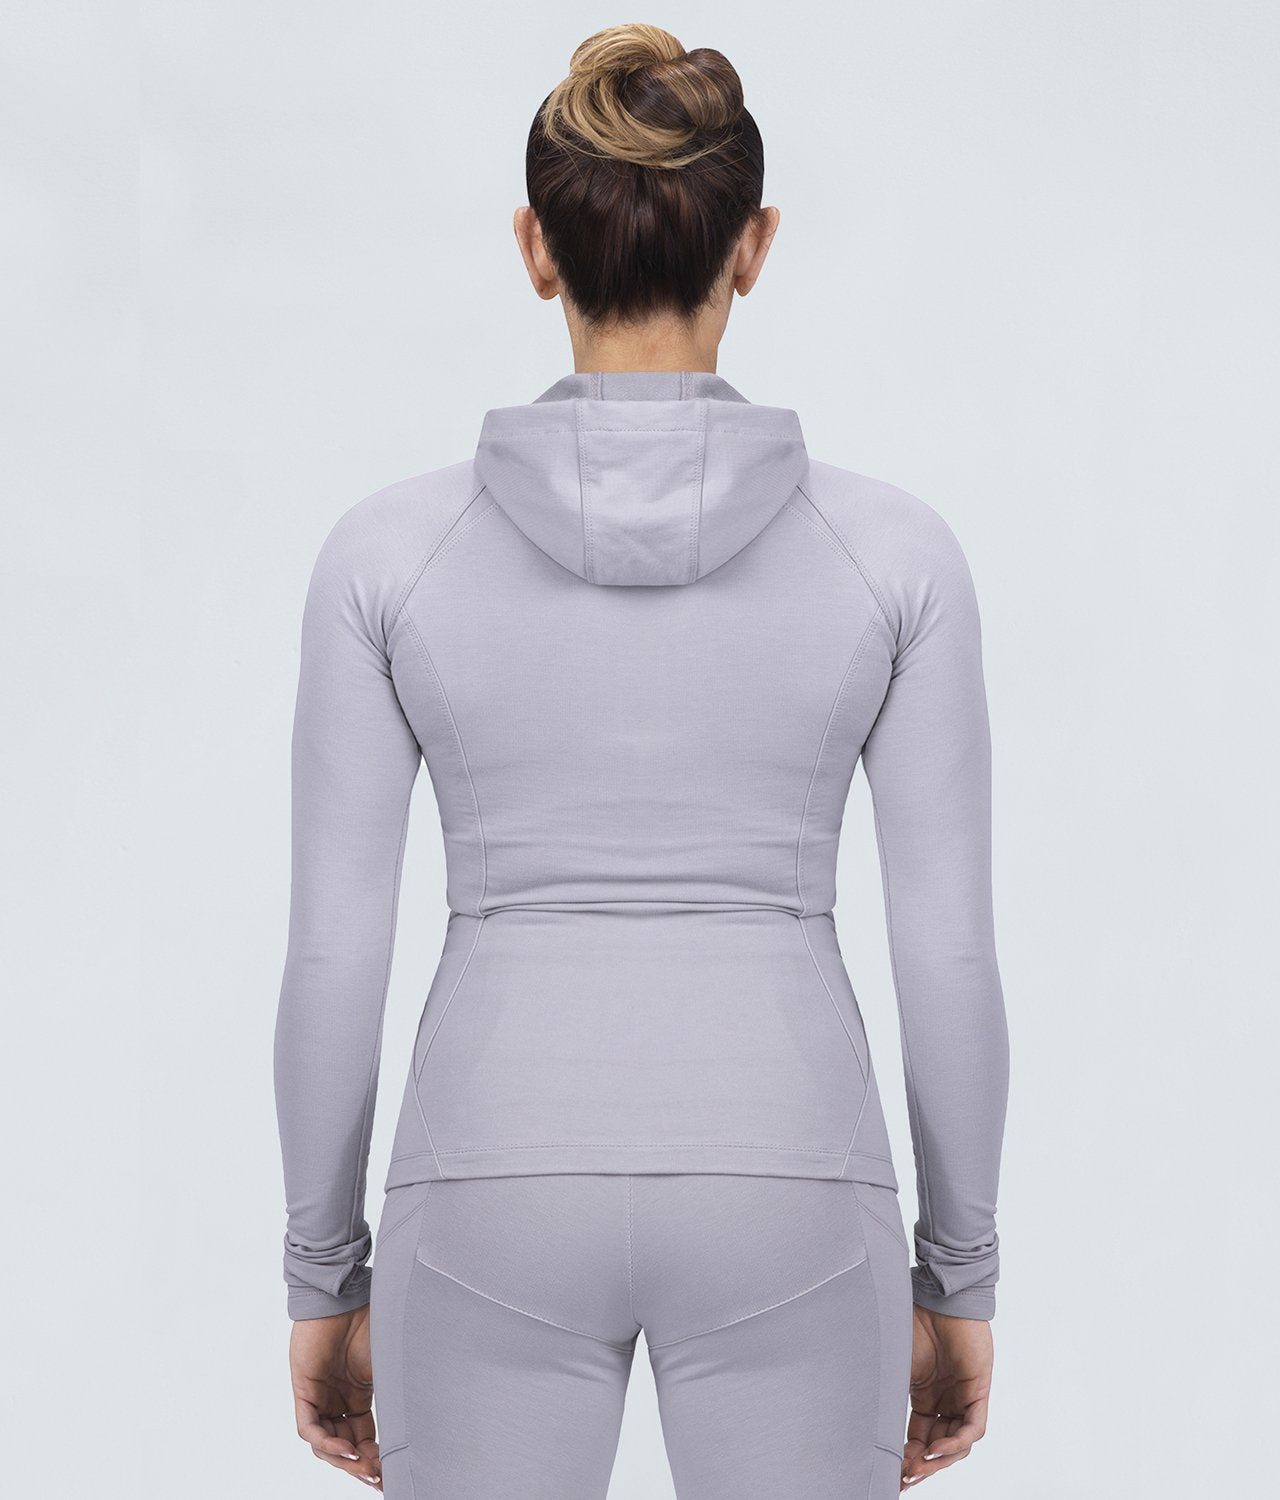 Born Tough Contoured Gray Zippered Closure Sleeve Loops Gym Workout Tracksuit Hoodie for Women